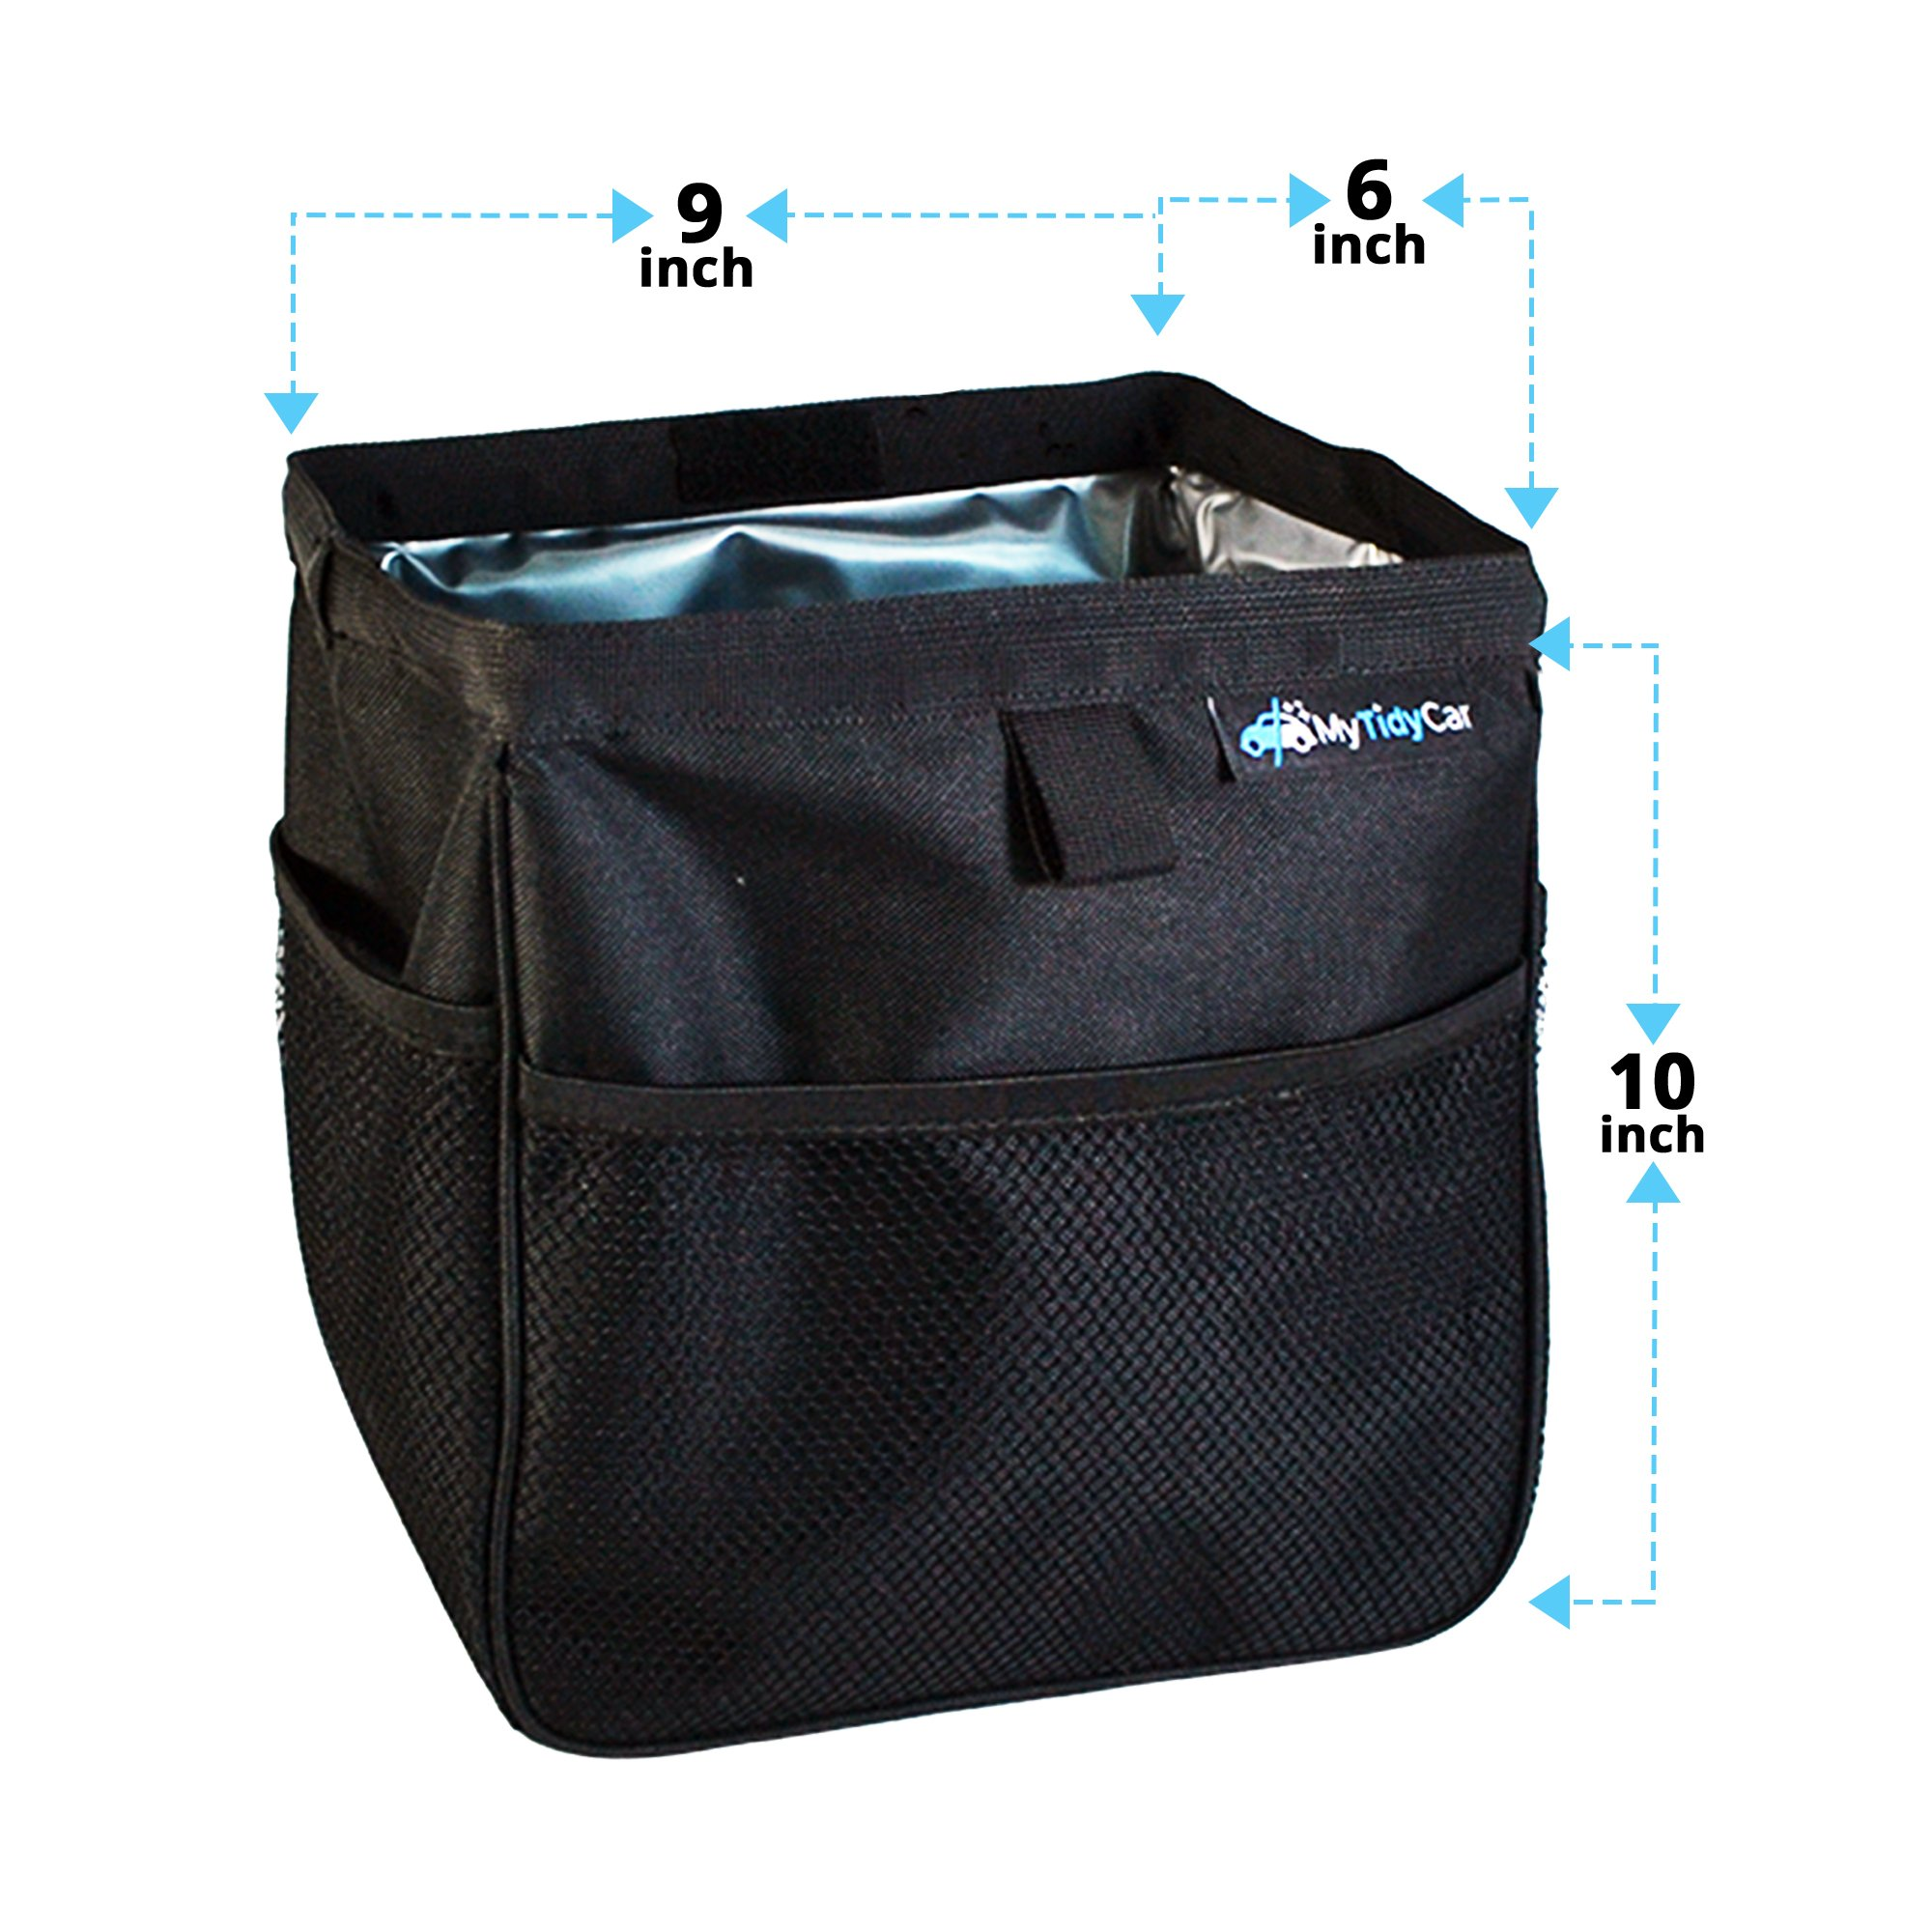 MyTidyCar Car Trash Can - Premium with Pockets & Waterproof Litter Garbage Bag - Large by MyTidyCar (Image #4)